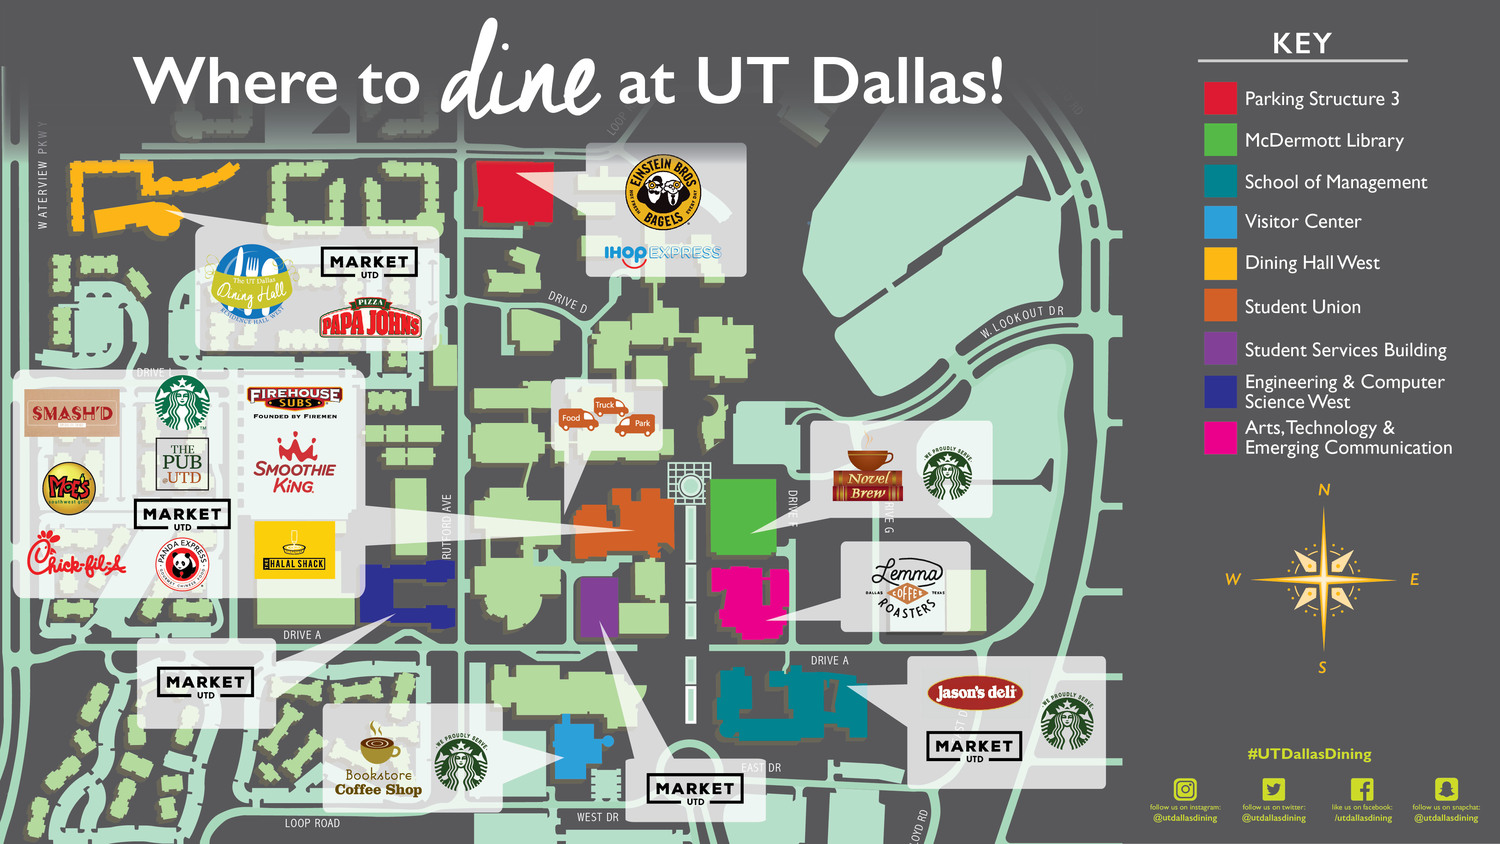 university of texas at dallas campus map Dine On Campus At The University Of Texas At Dallas Where To Eat